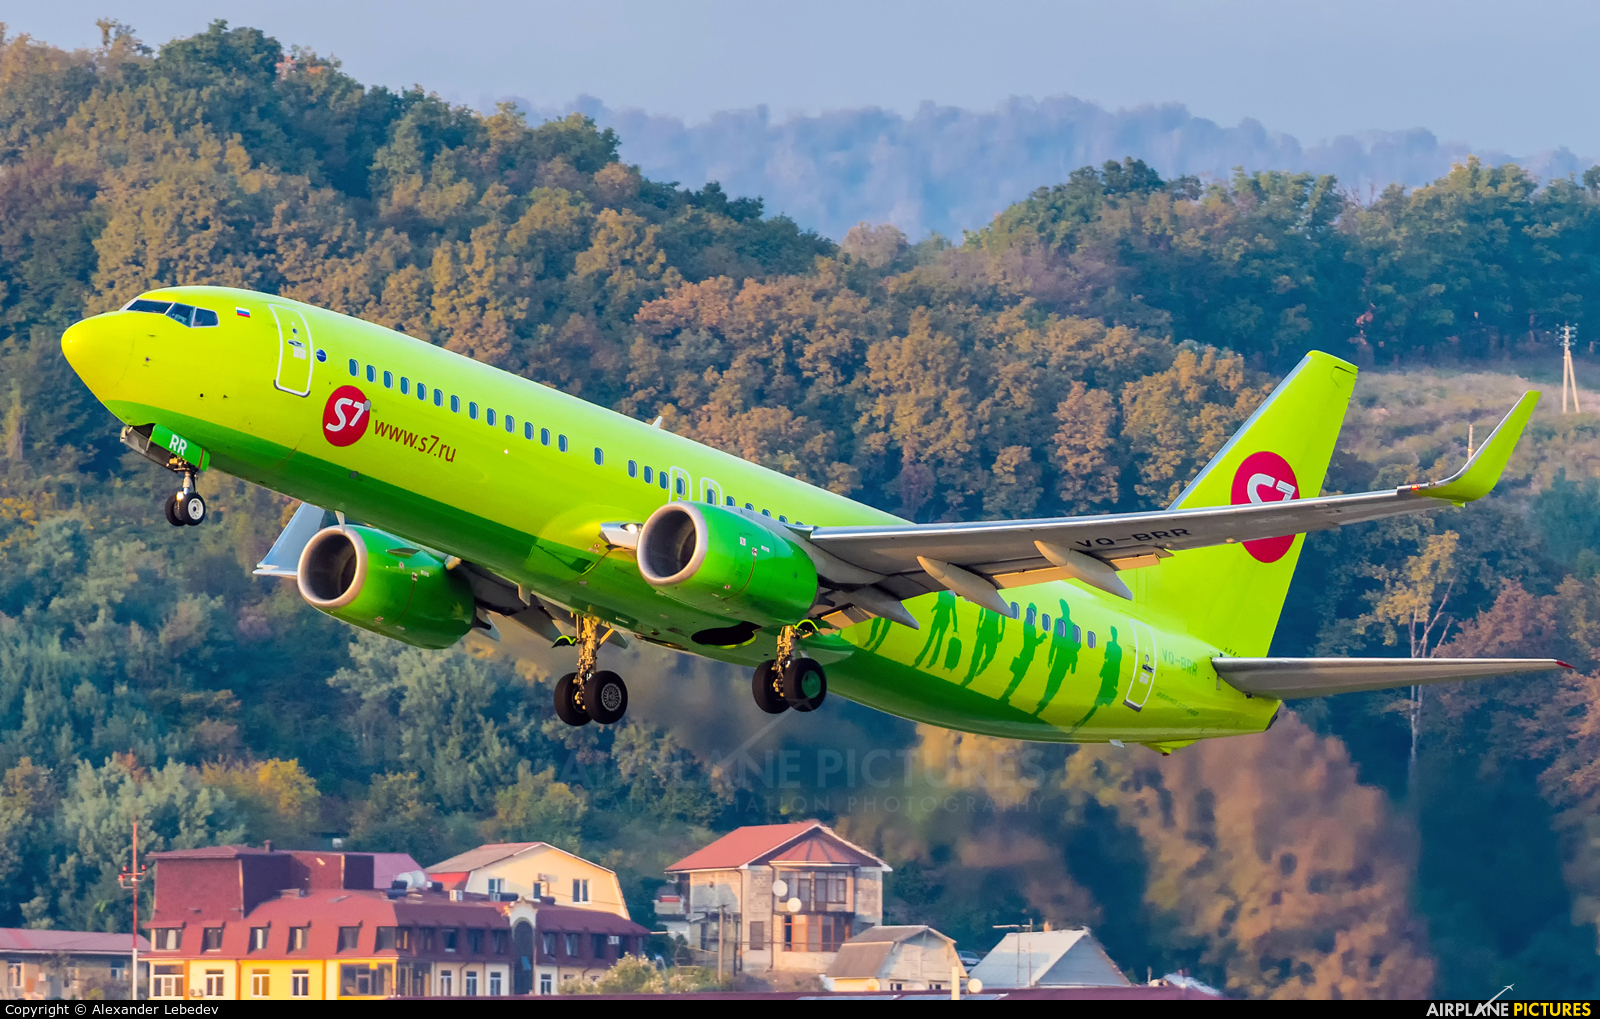 S7 Airlines VQ-BRR aircraft at Sochi Intl